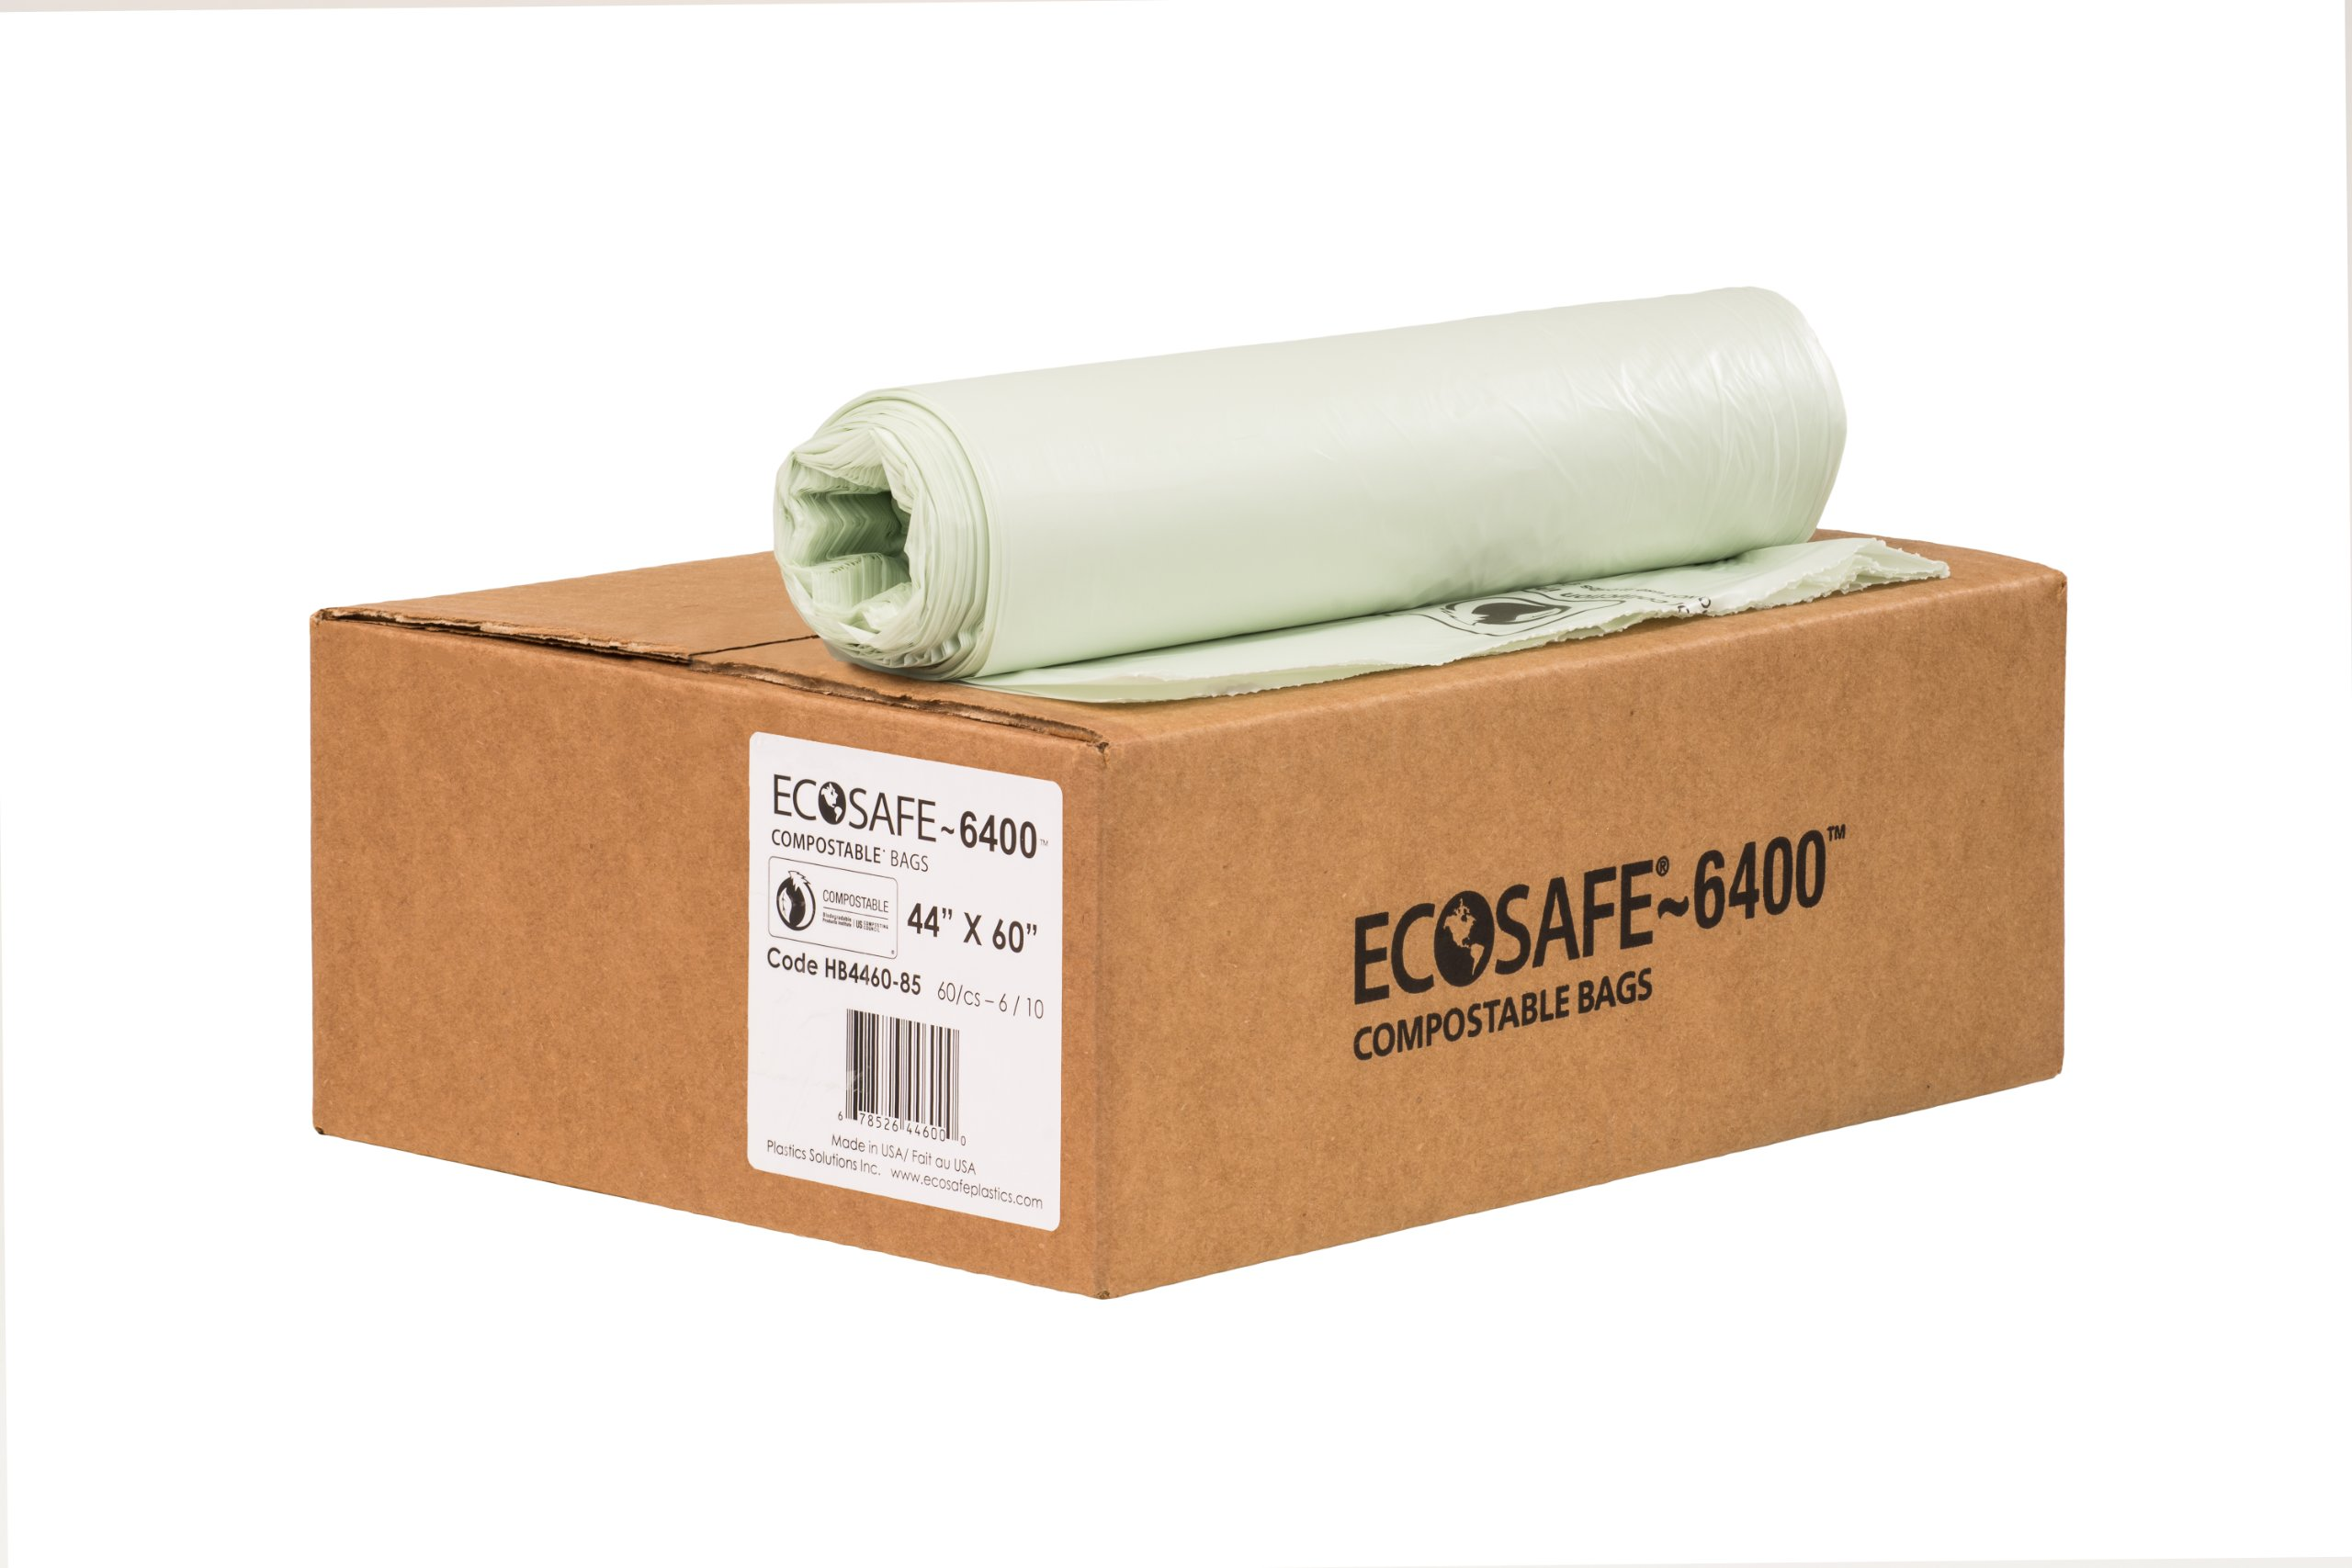 EcoSafe-6400 HB4460-85 Compostable Bag, Certified Compostable, 60-Gallon, Green (Pack of 60)